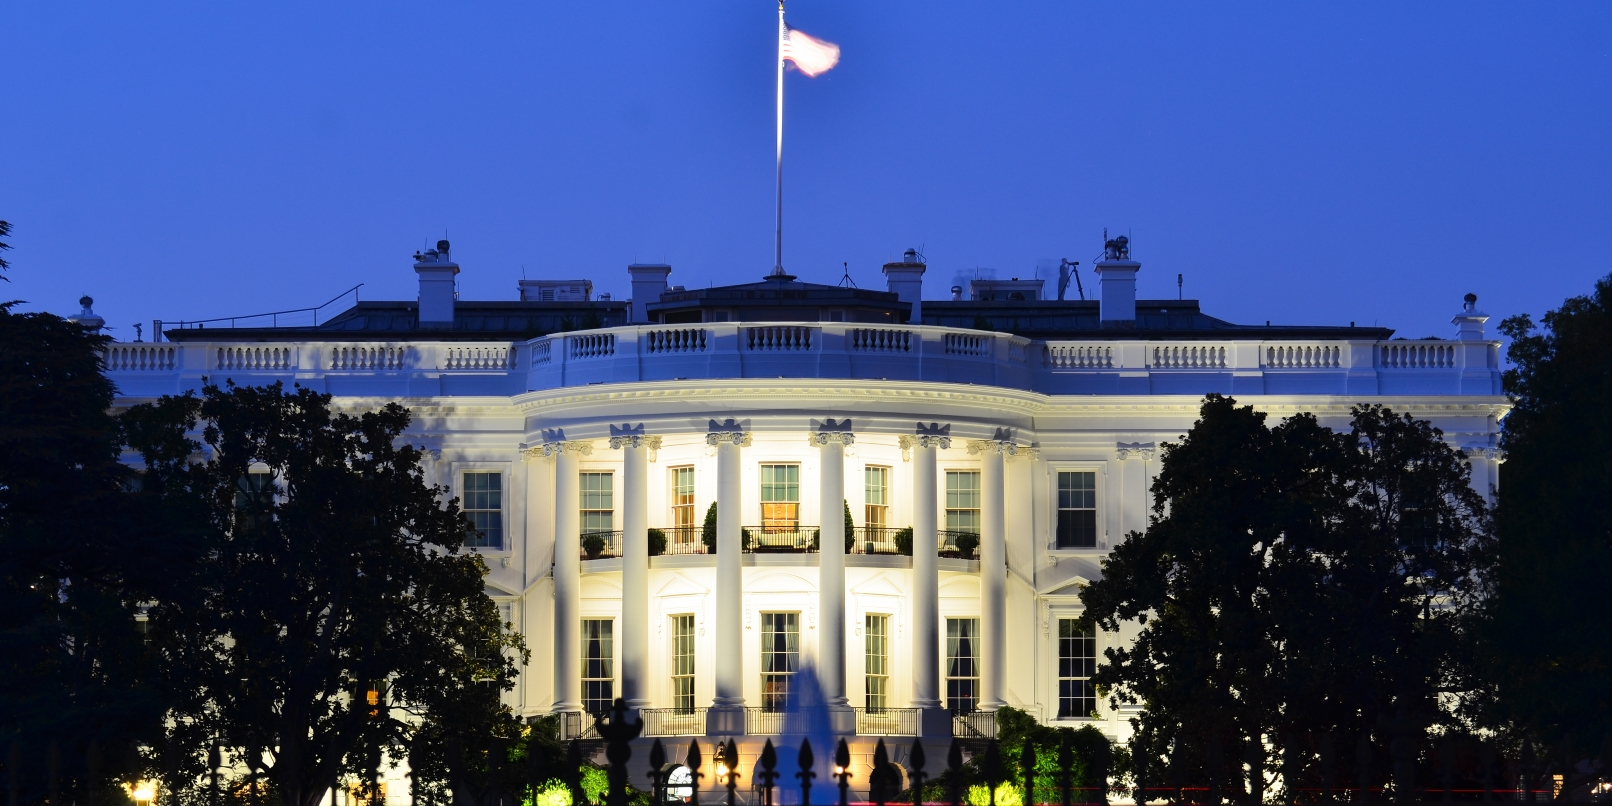 Crappy Wi-Fi signal? The White House has that problem too